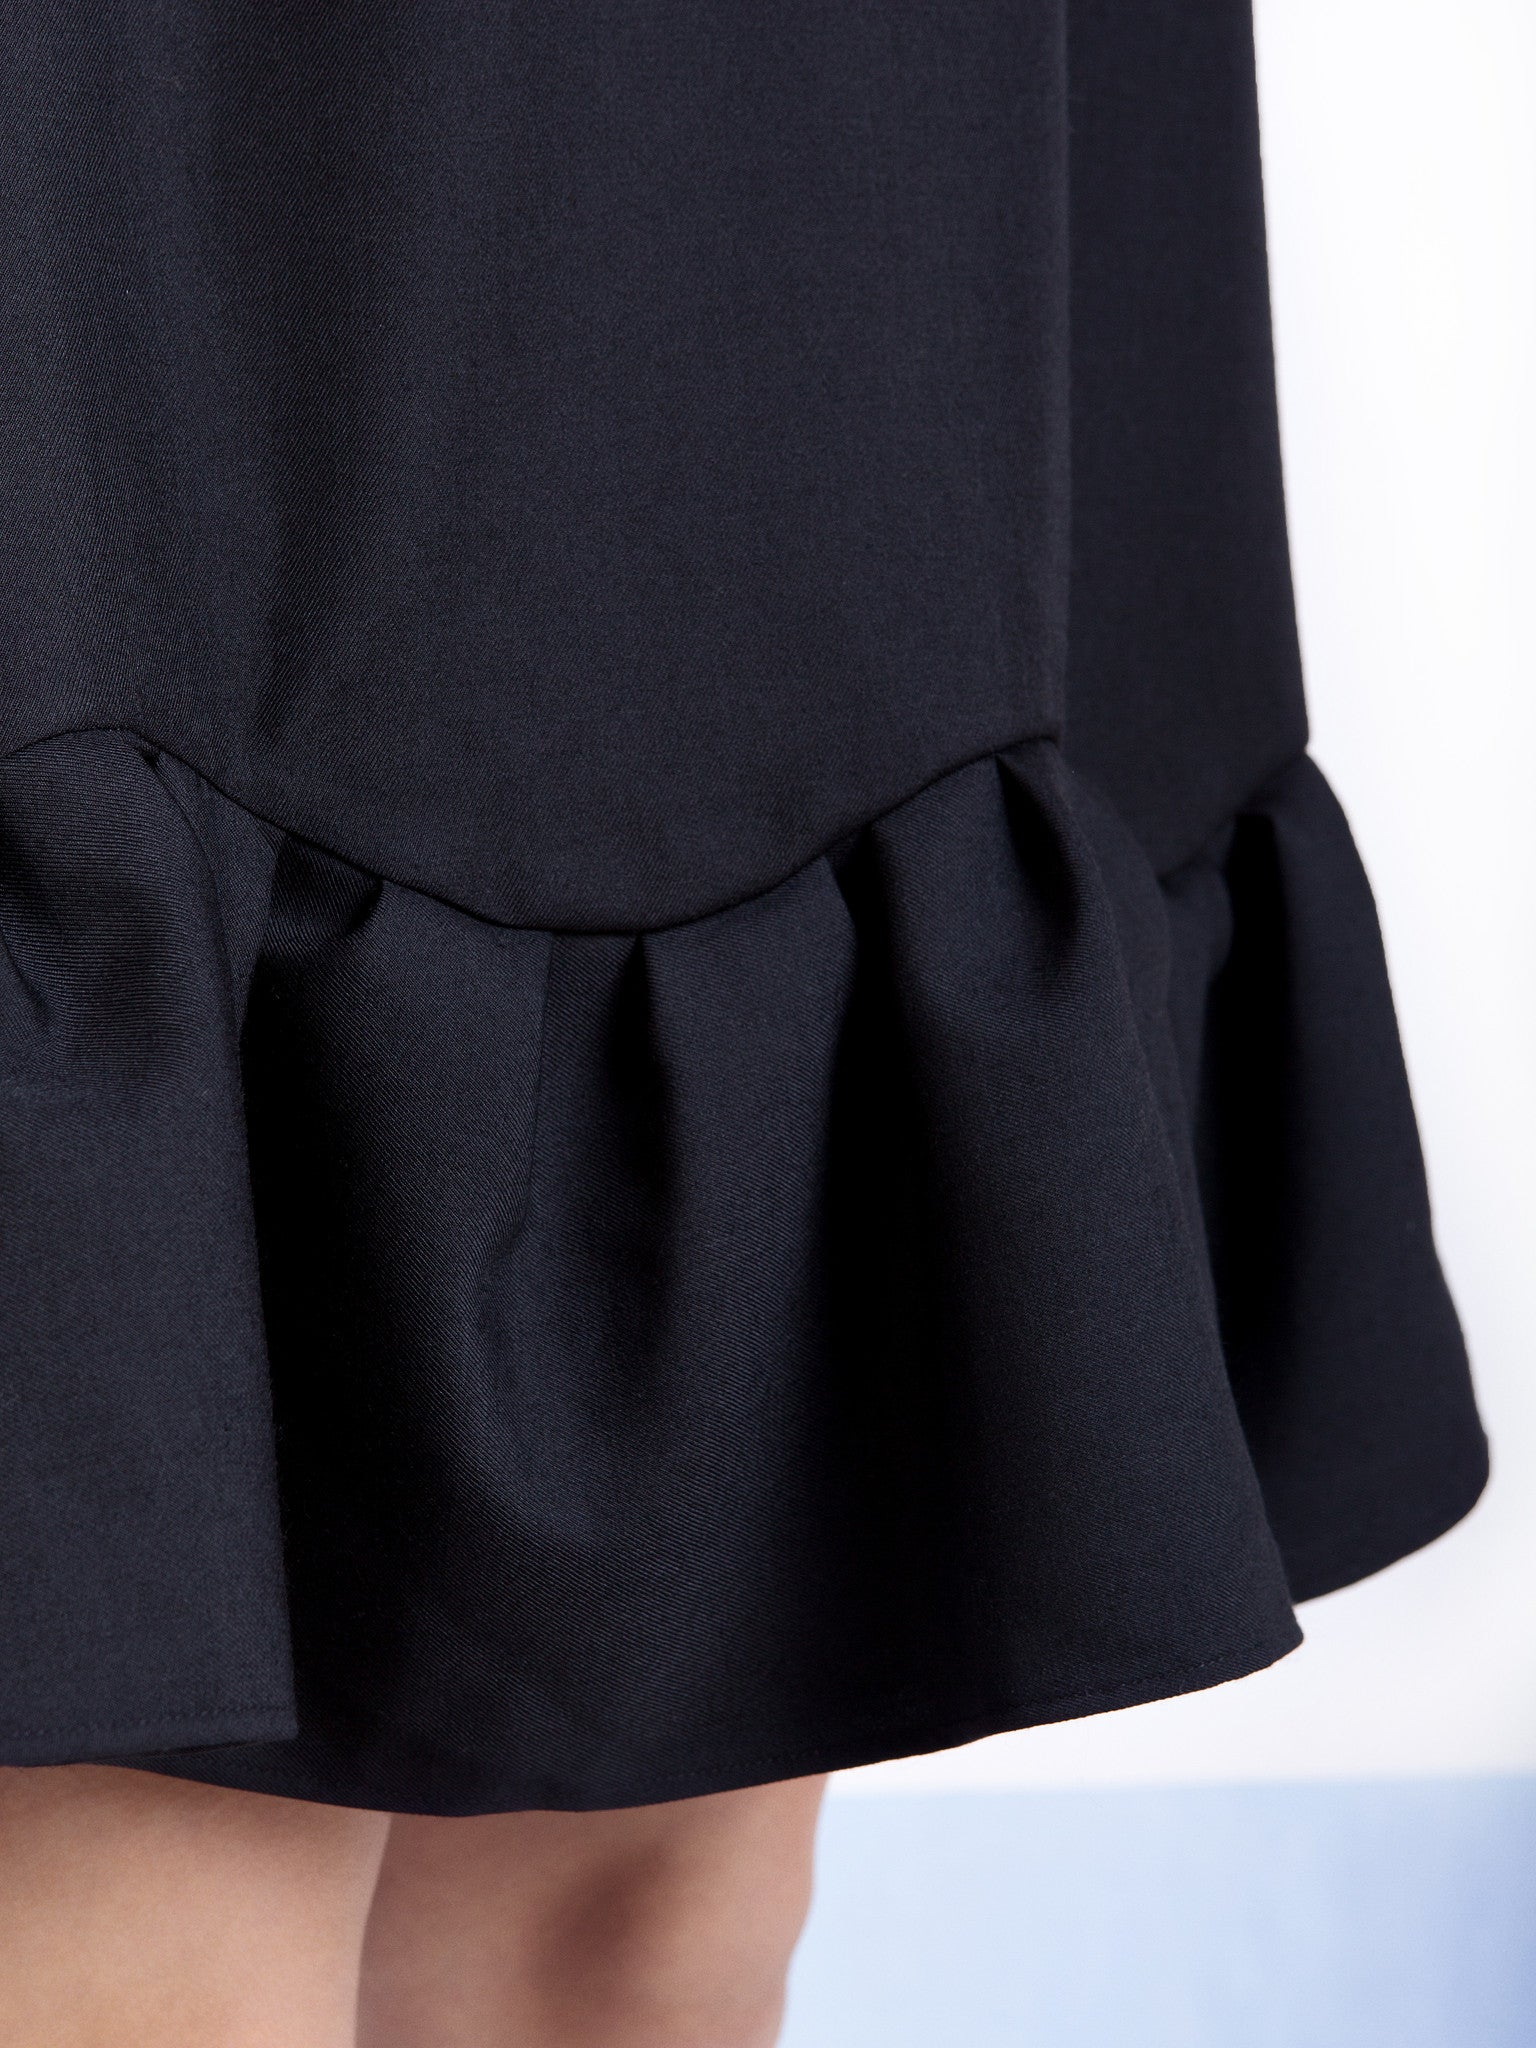 Ambali A- Line Black Frill Dress Detail